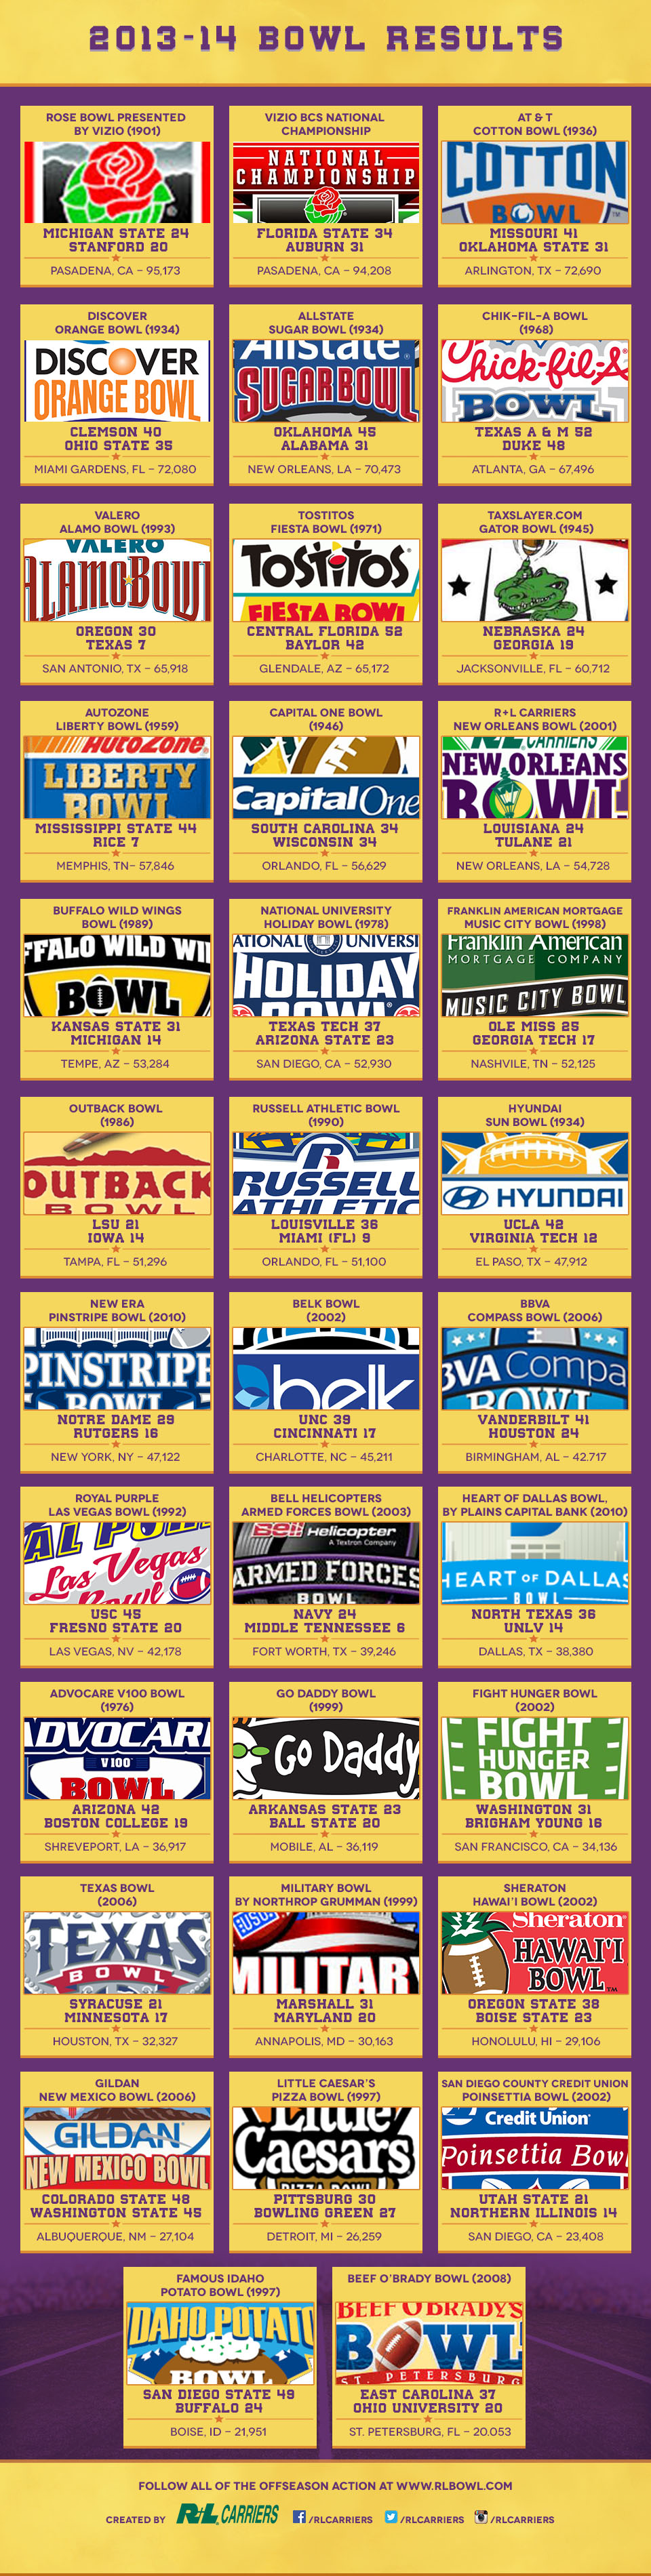 2013-2014 Bowl Results with attendance and host city.